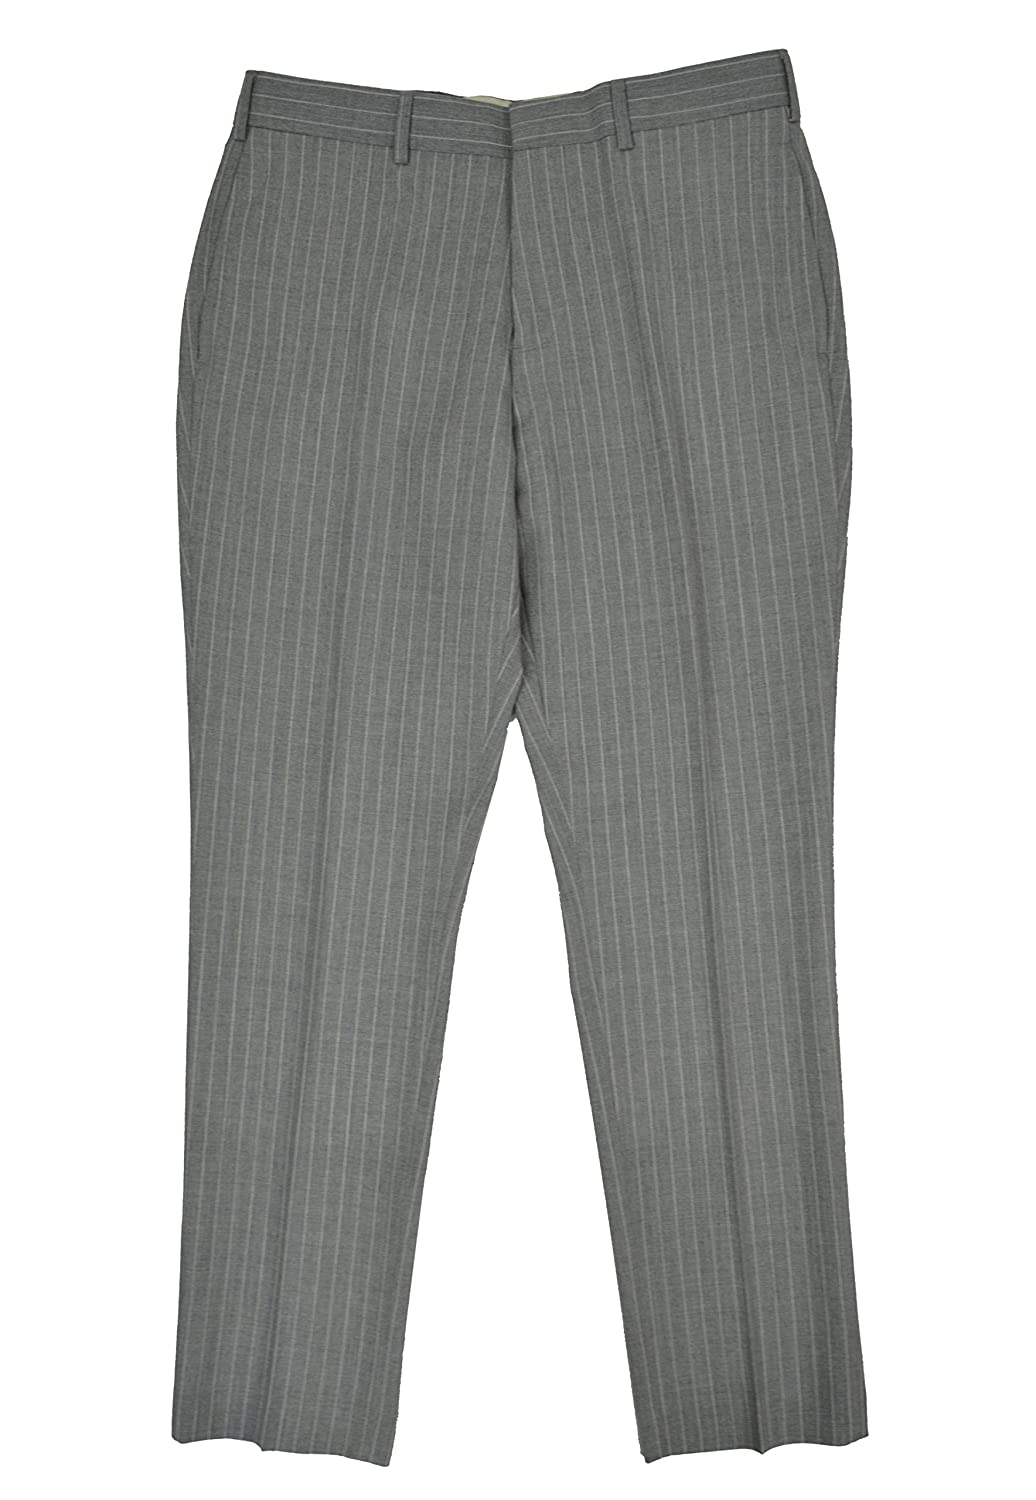 6725cd497f Brooks Brothers Red Fleece Mens Flat Front 100% Wool Dress Pants Grey  Striped at Amazon Men s Clothing store